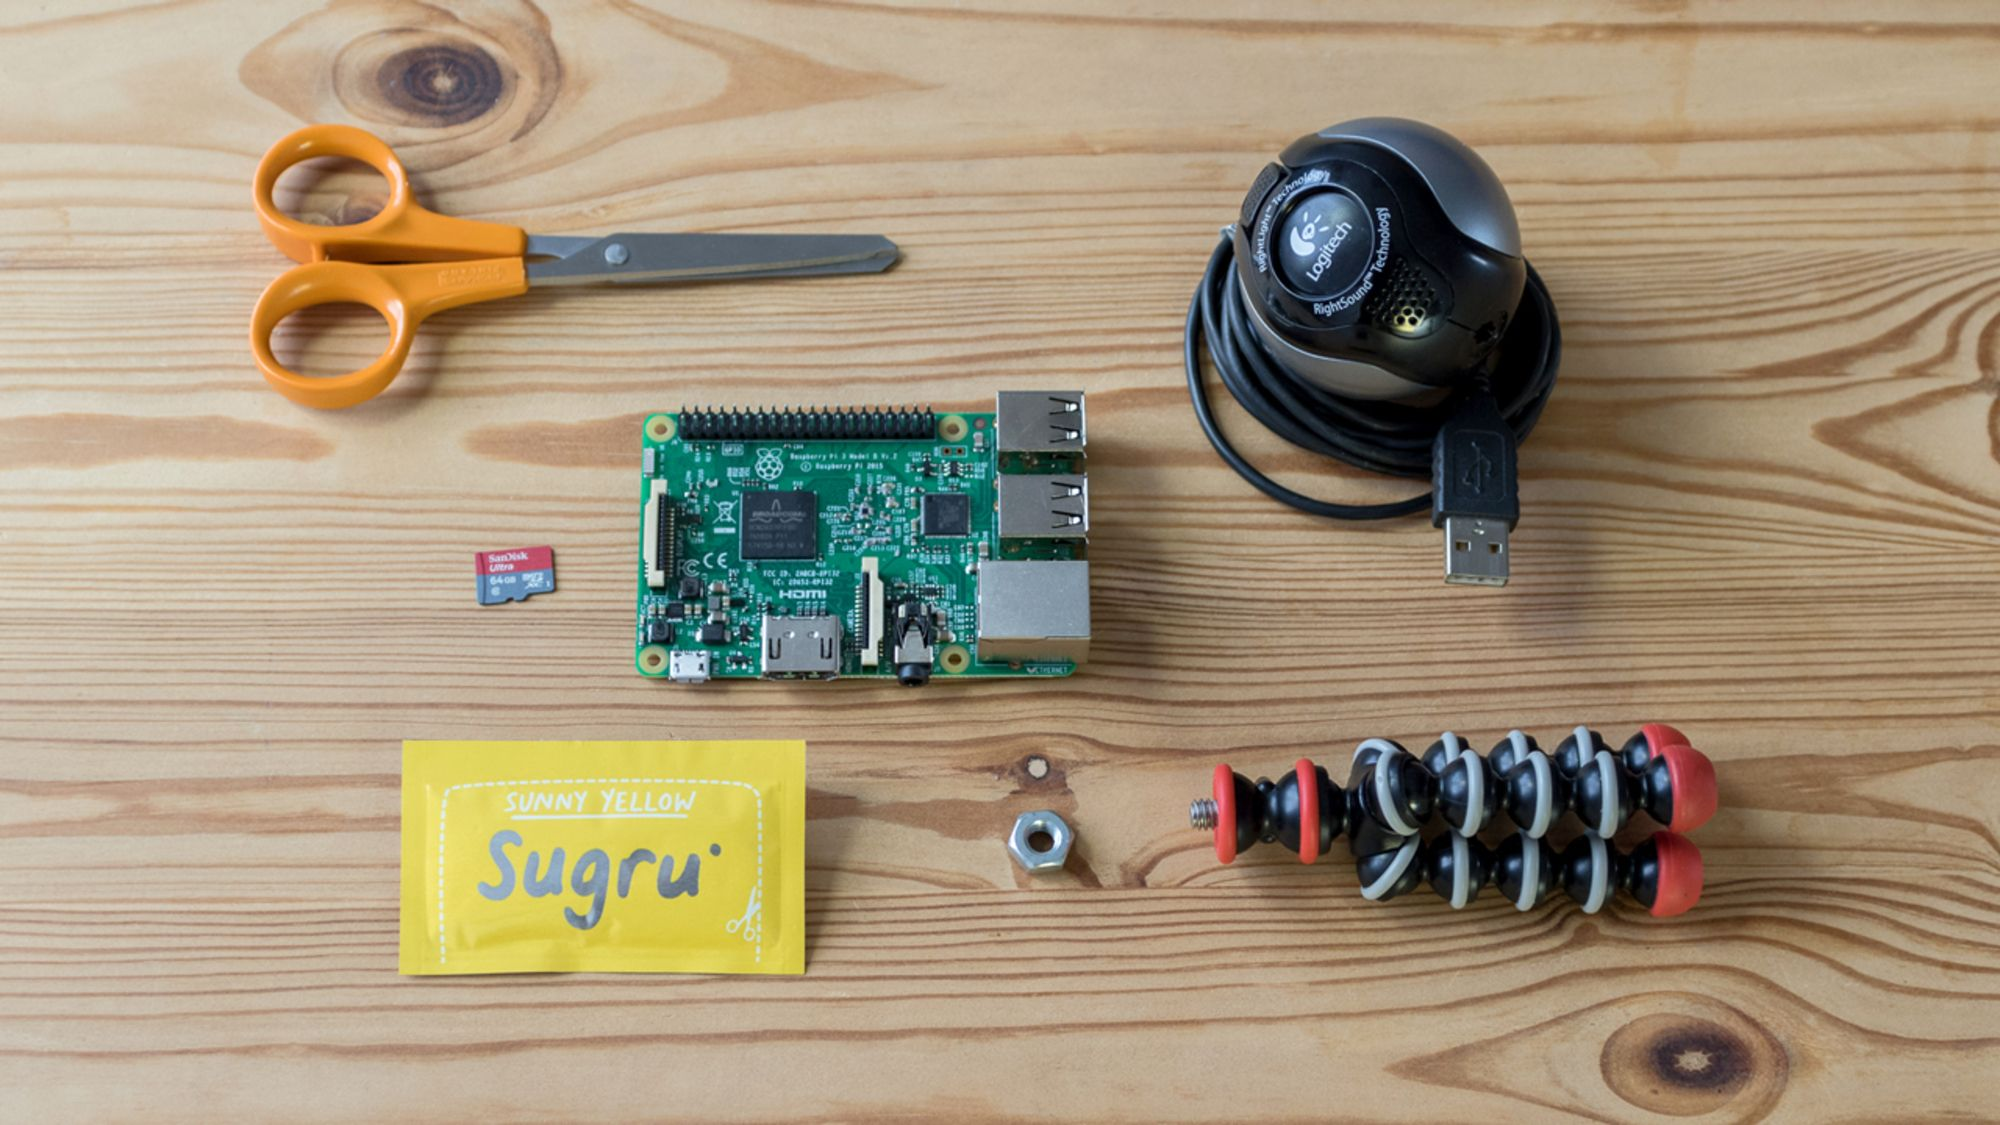 How To Build Your Own Iot Camera Sugru Circuit Scissors Old Webcam Sd Card Raspberry Pi 1 Single Use Pack Of